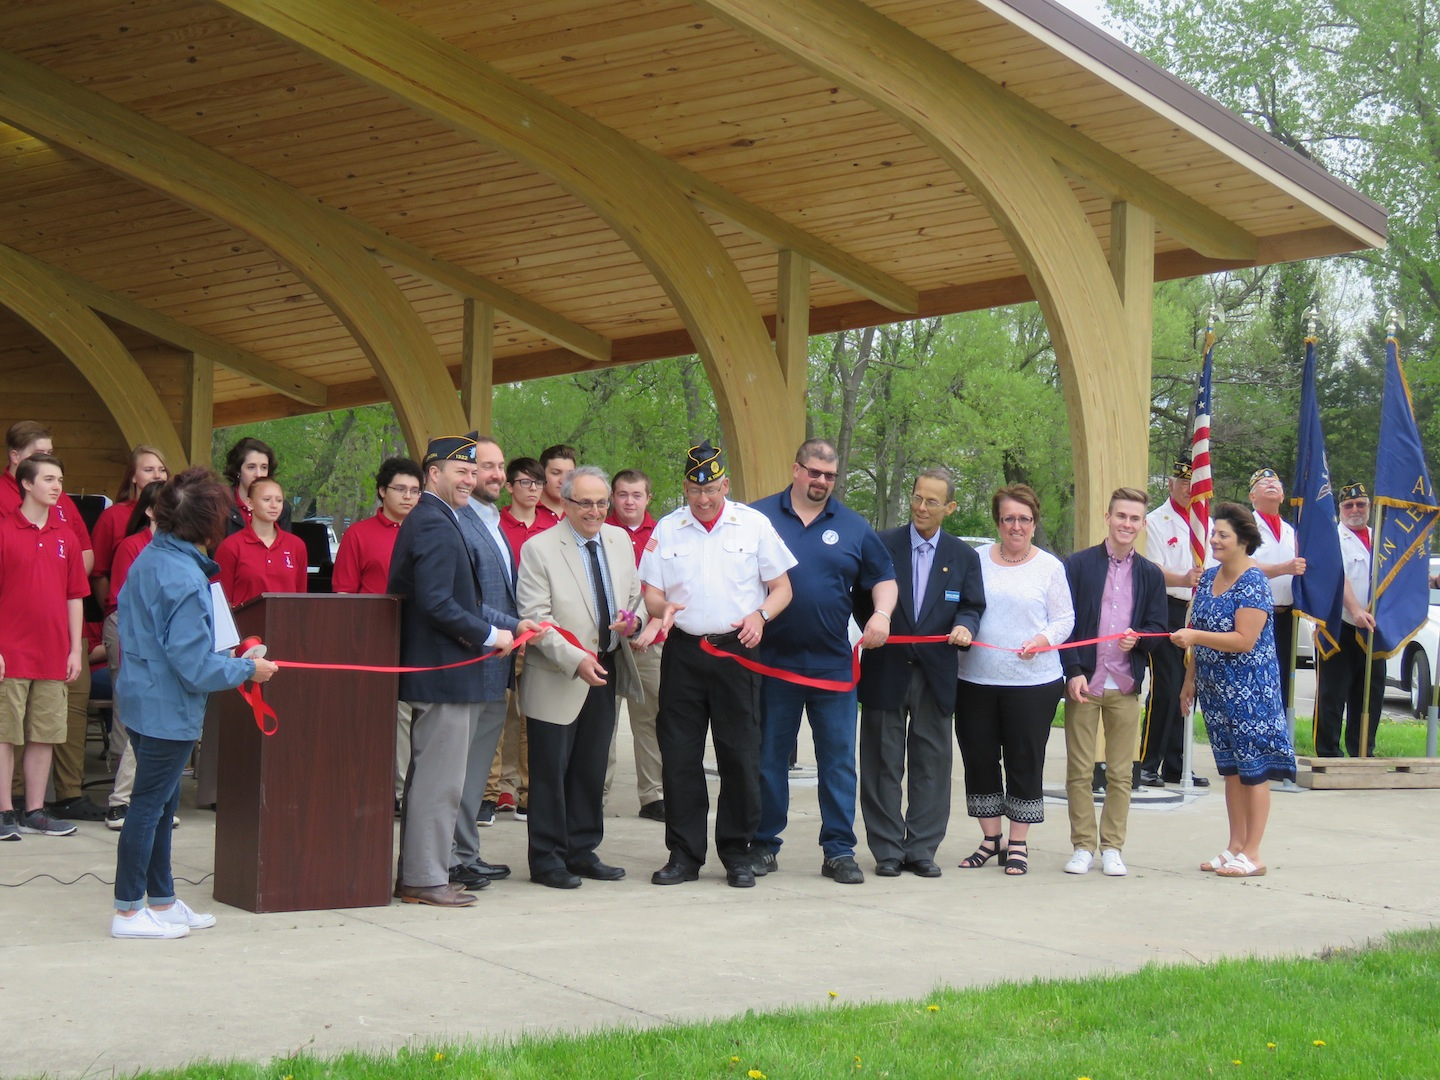 From left, Parks and Recreation Director Patty Brosius, Sen. Rob Ortt, Eighth District Legislator Richard Andres, North Tonawanda Mayor Art Pappas, Alderman Robert Pecoraro, Alderman Eric Zadzilka, Alderman Mark Berube, Alderman Donna Braun, Alderman Austin Tylec and Pam Hogan of the Parks and Recreation Department cut the ribbon to the brand new band shell. (Photo by David Yarger)